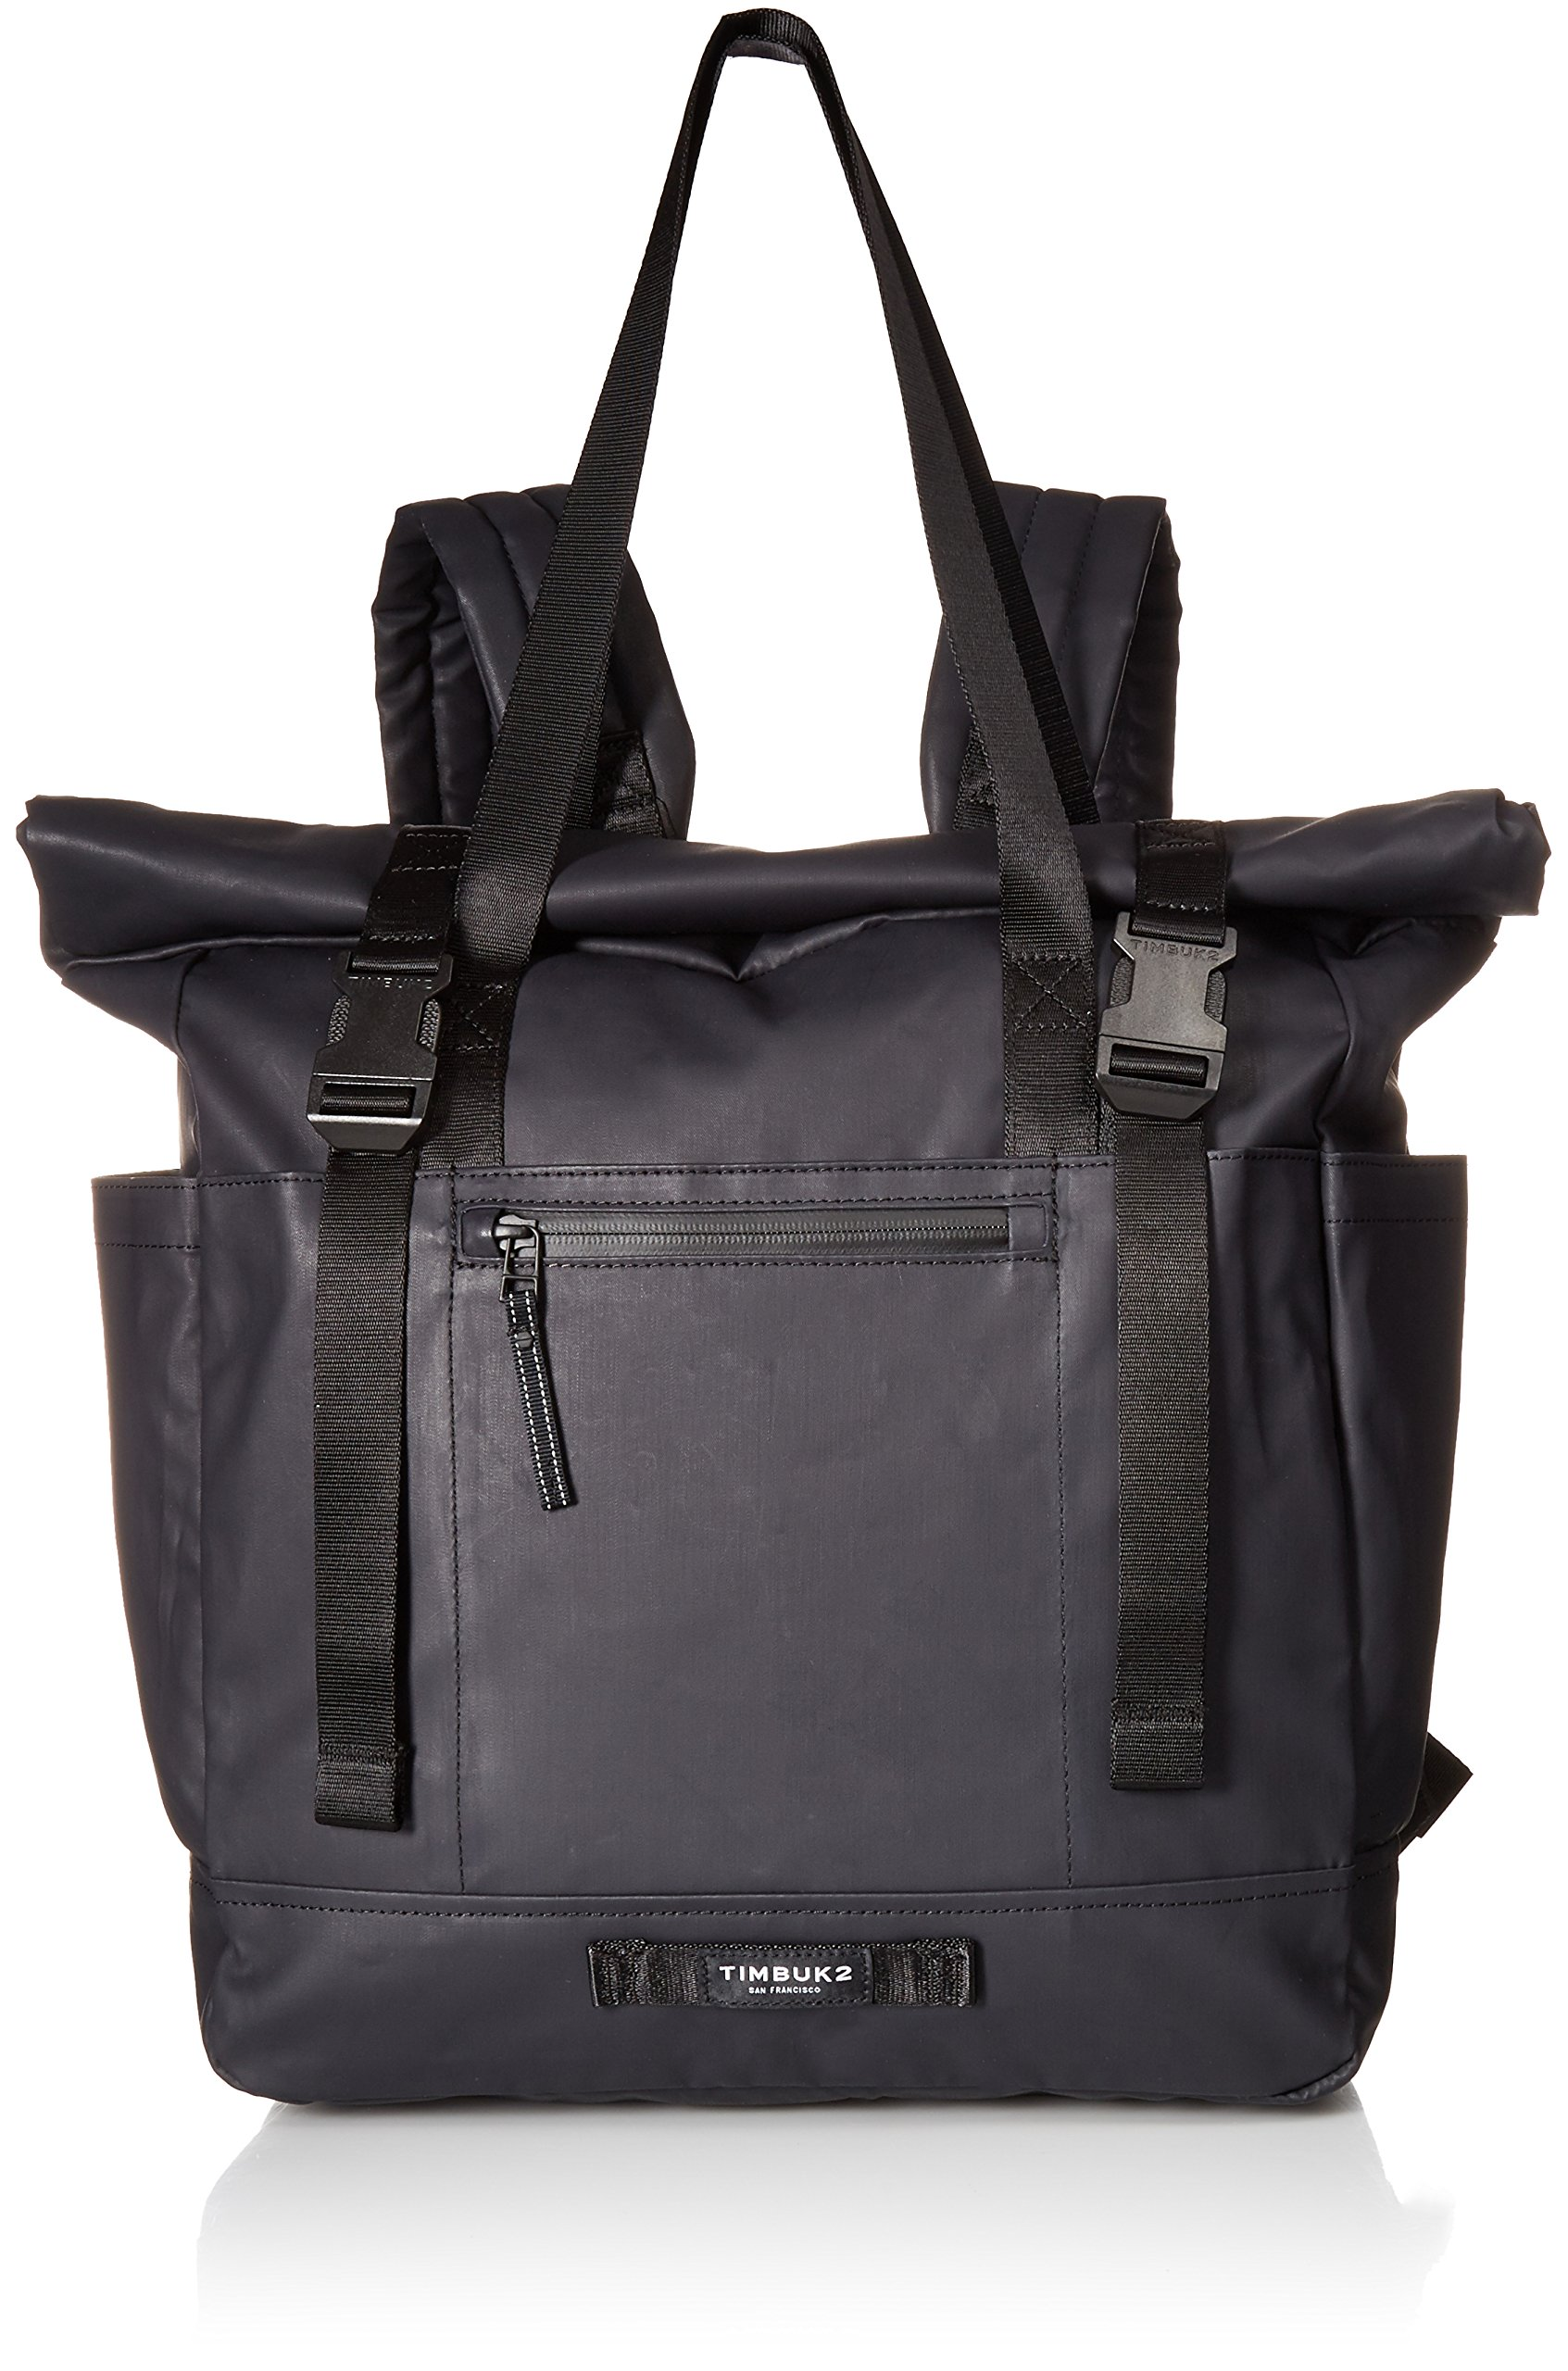 Timbuk2 Forge Tote Twill, Black, One Size